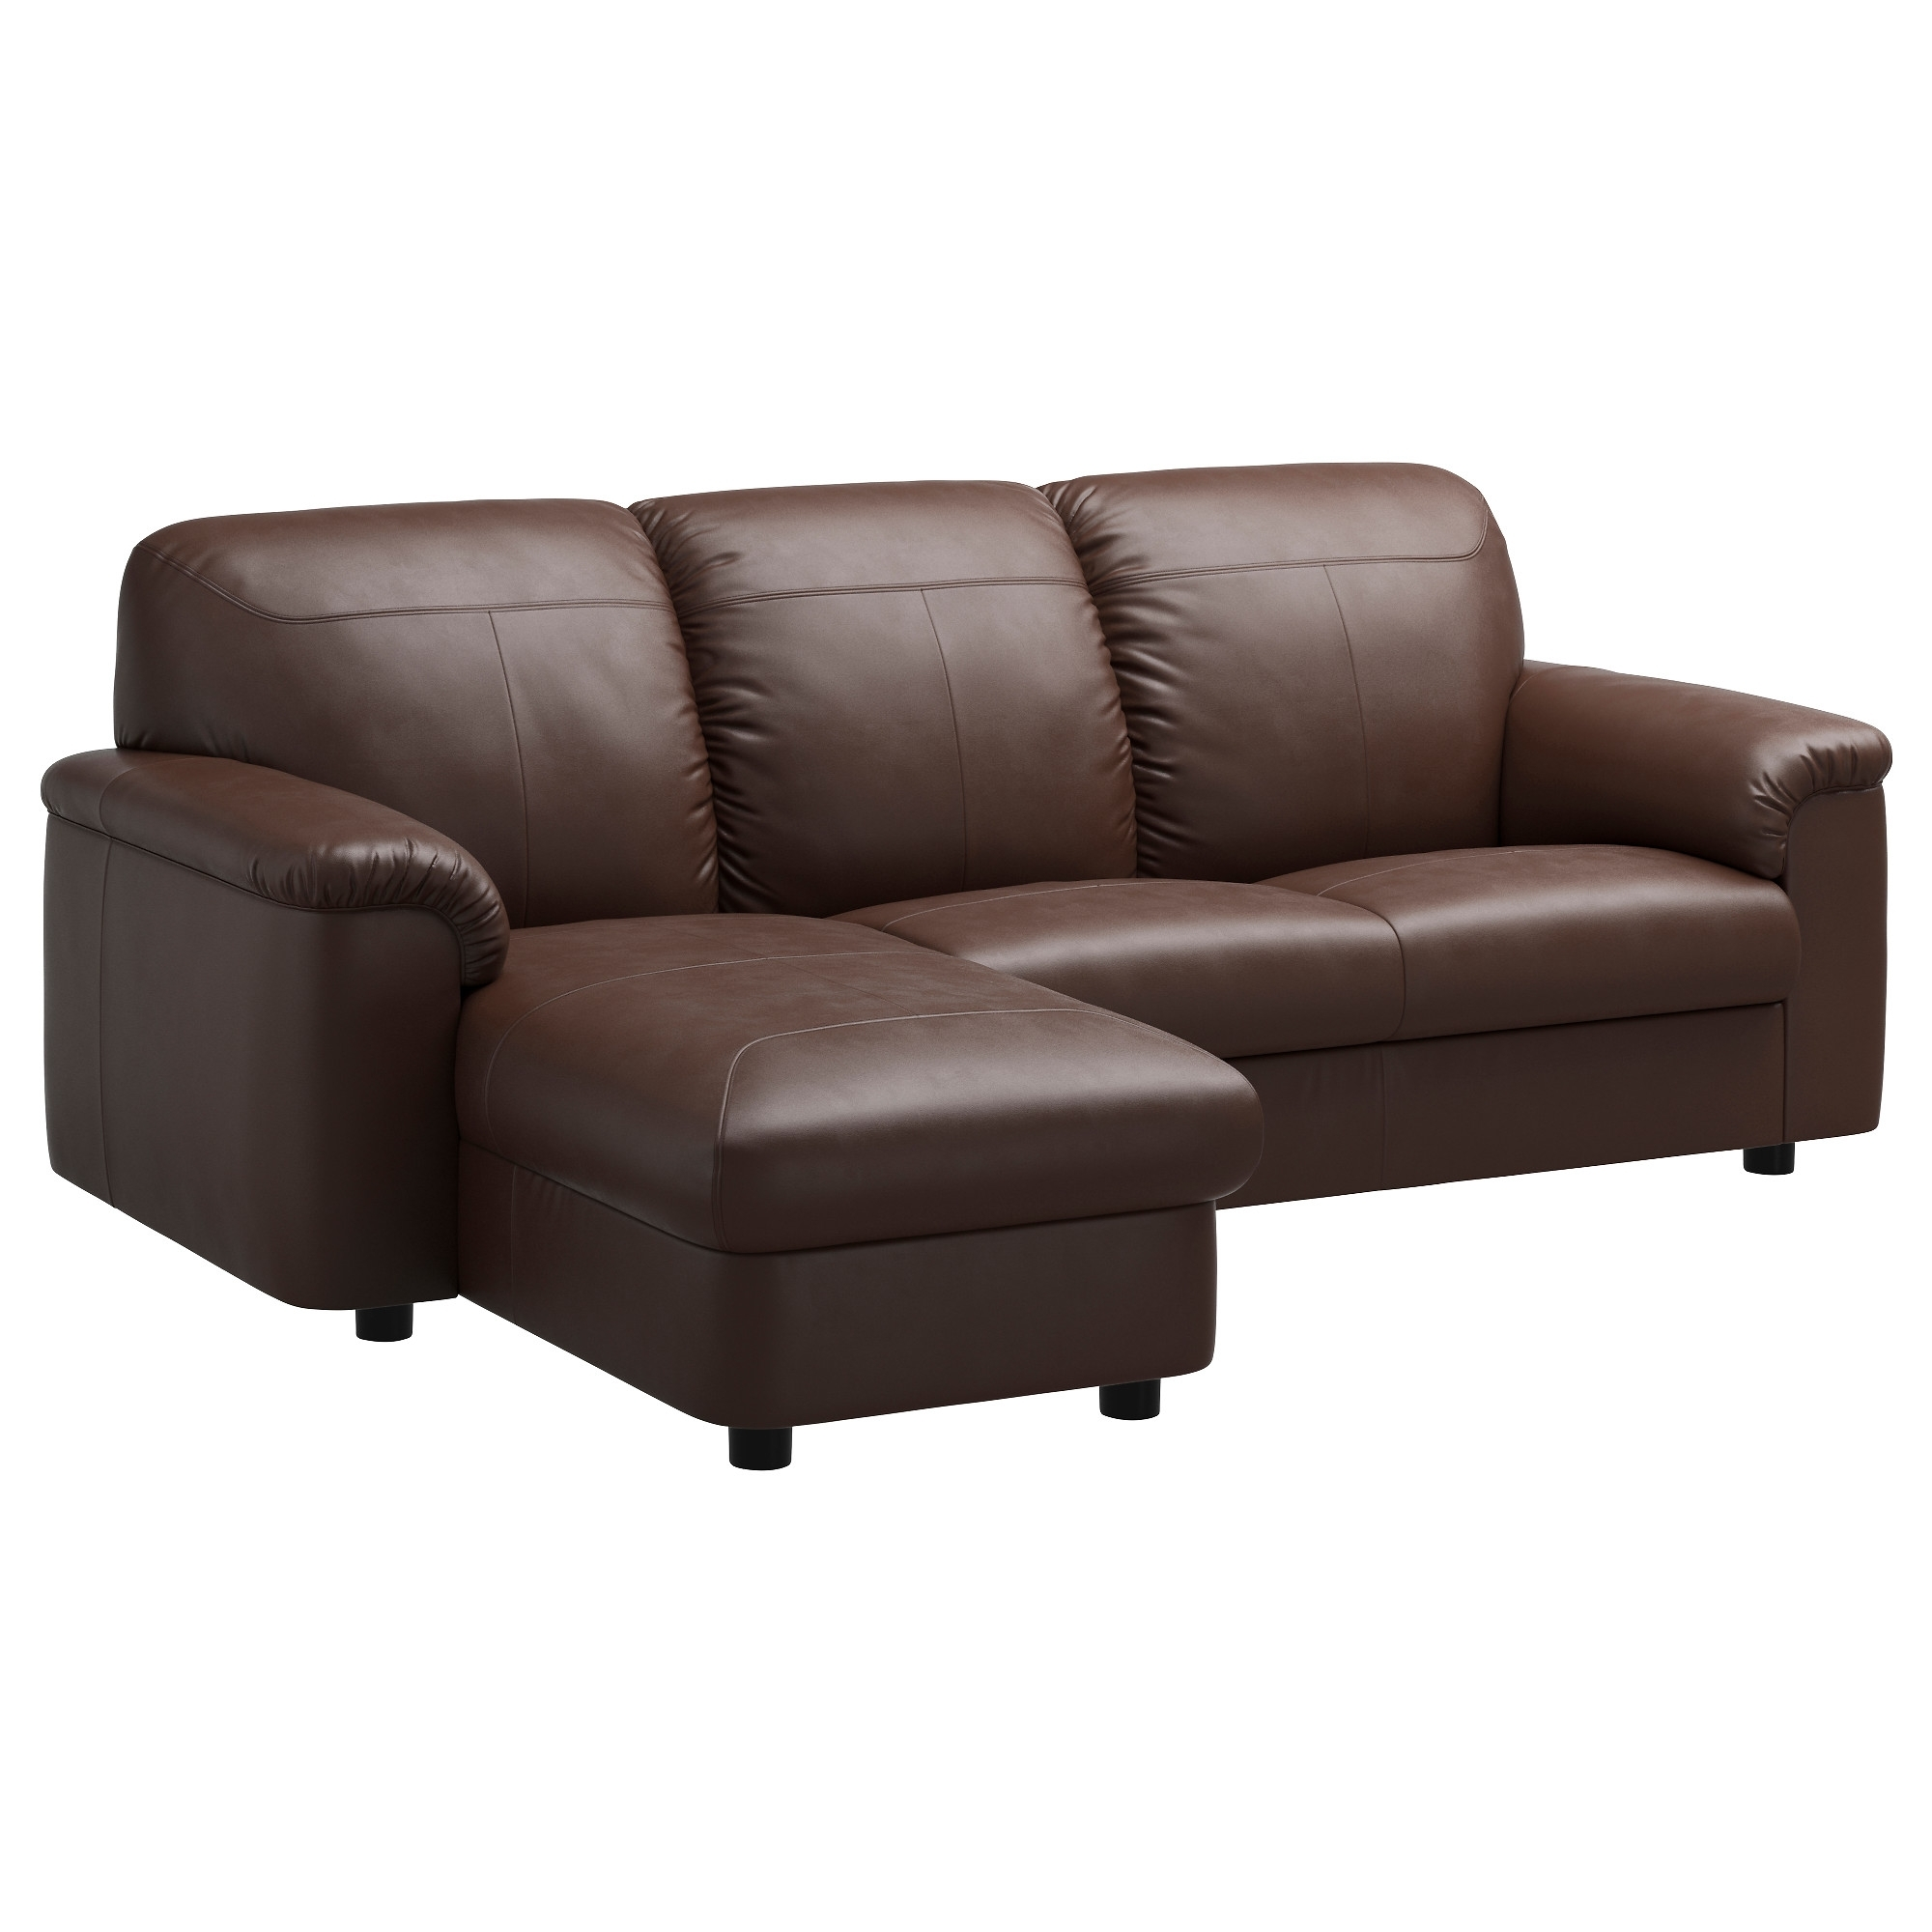 Most Recent Ikea Two Seater Sofas For Timsfors Sectional, 3 Seat – Mjuk/kimstad Dark Brown – Ikea (View 14 of 20)